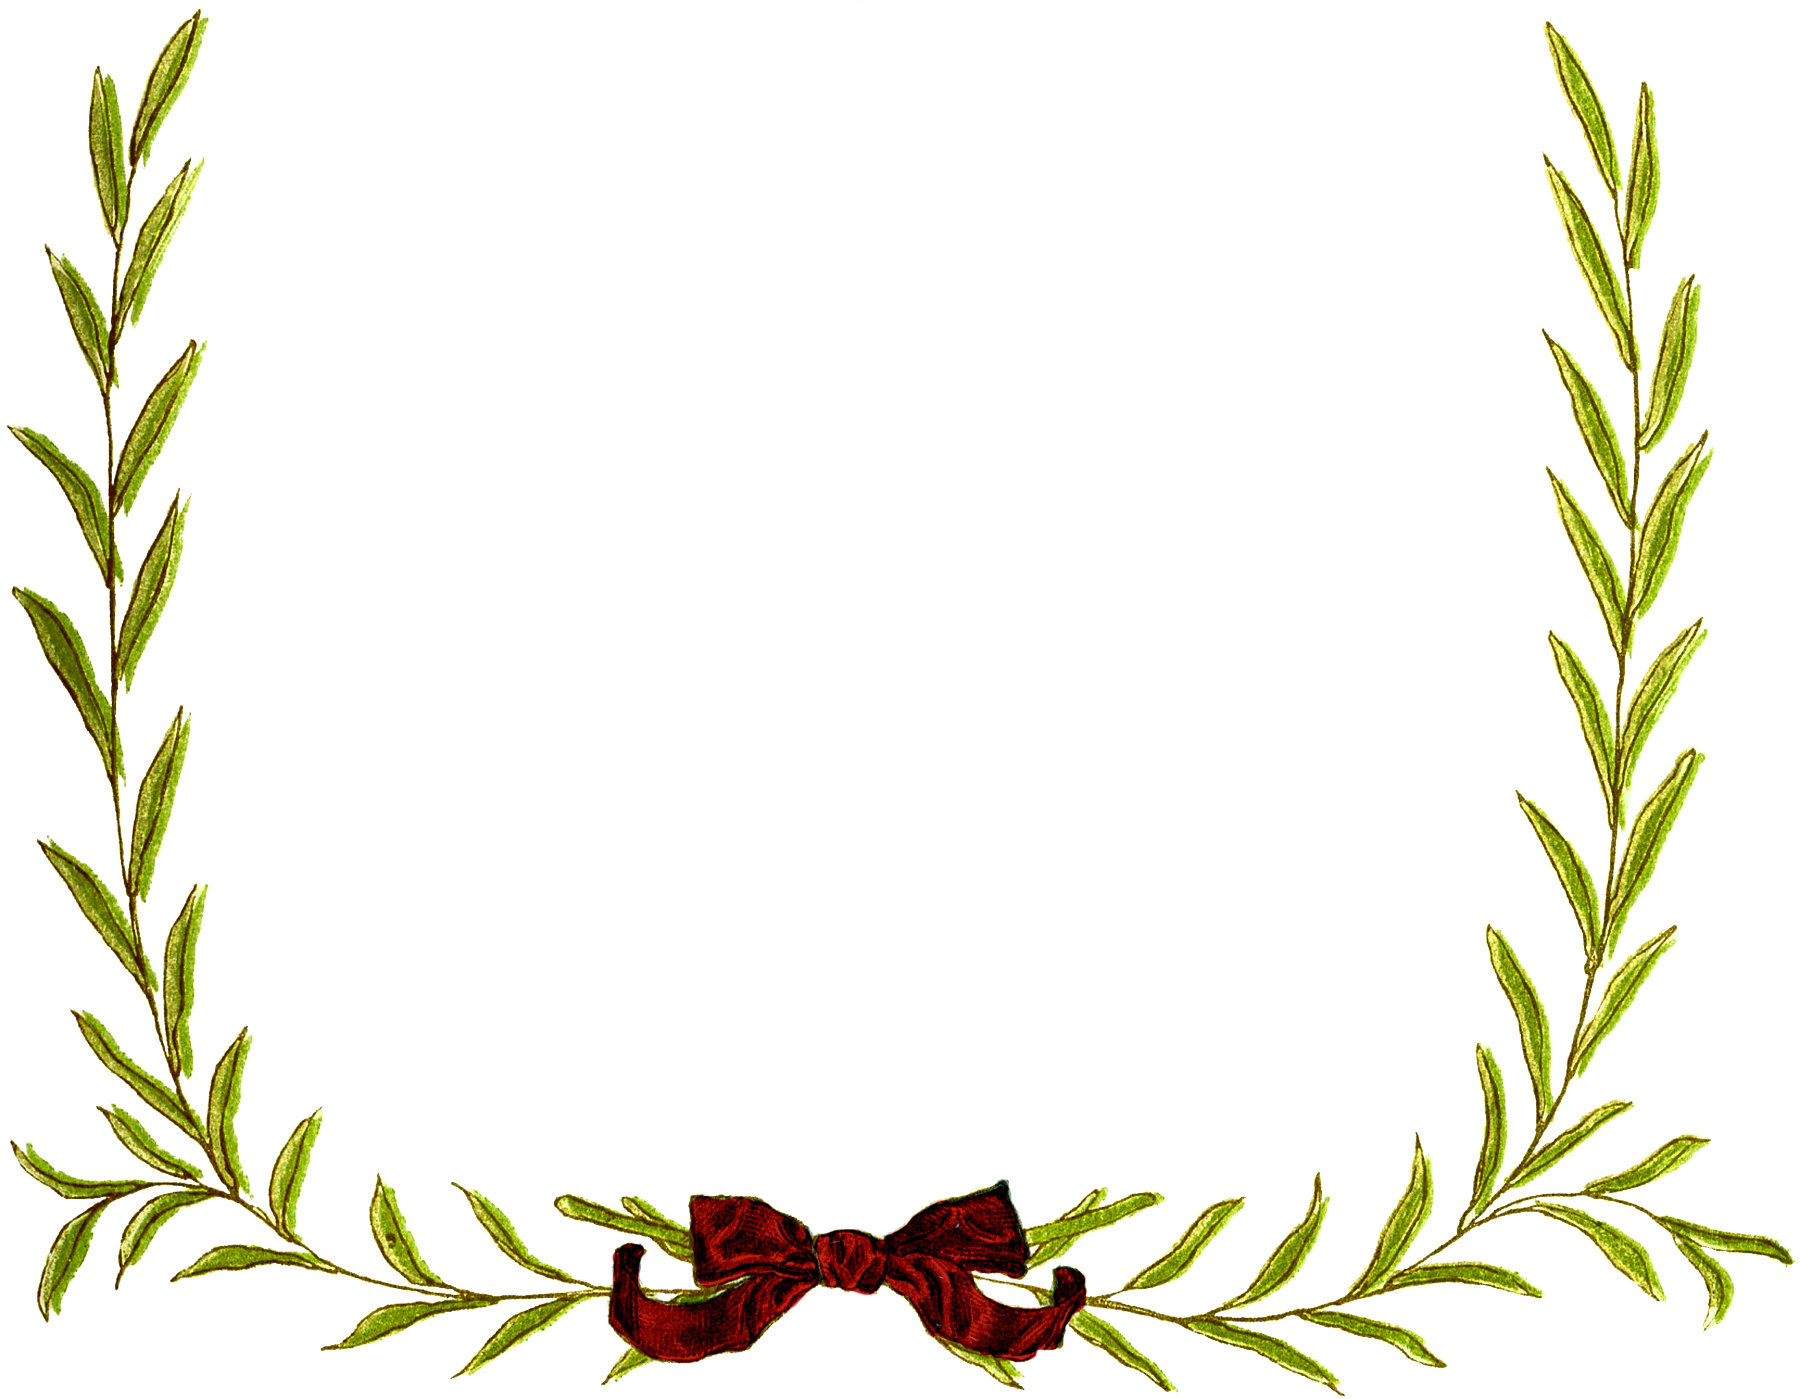 Simple Christmas Wreath Frame Images - The Graphics Fairy